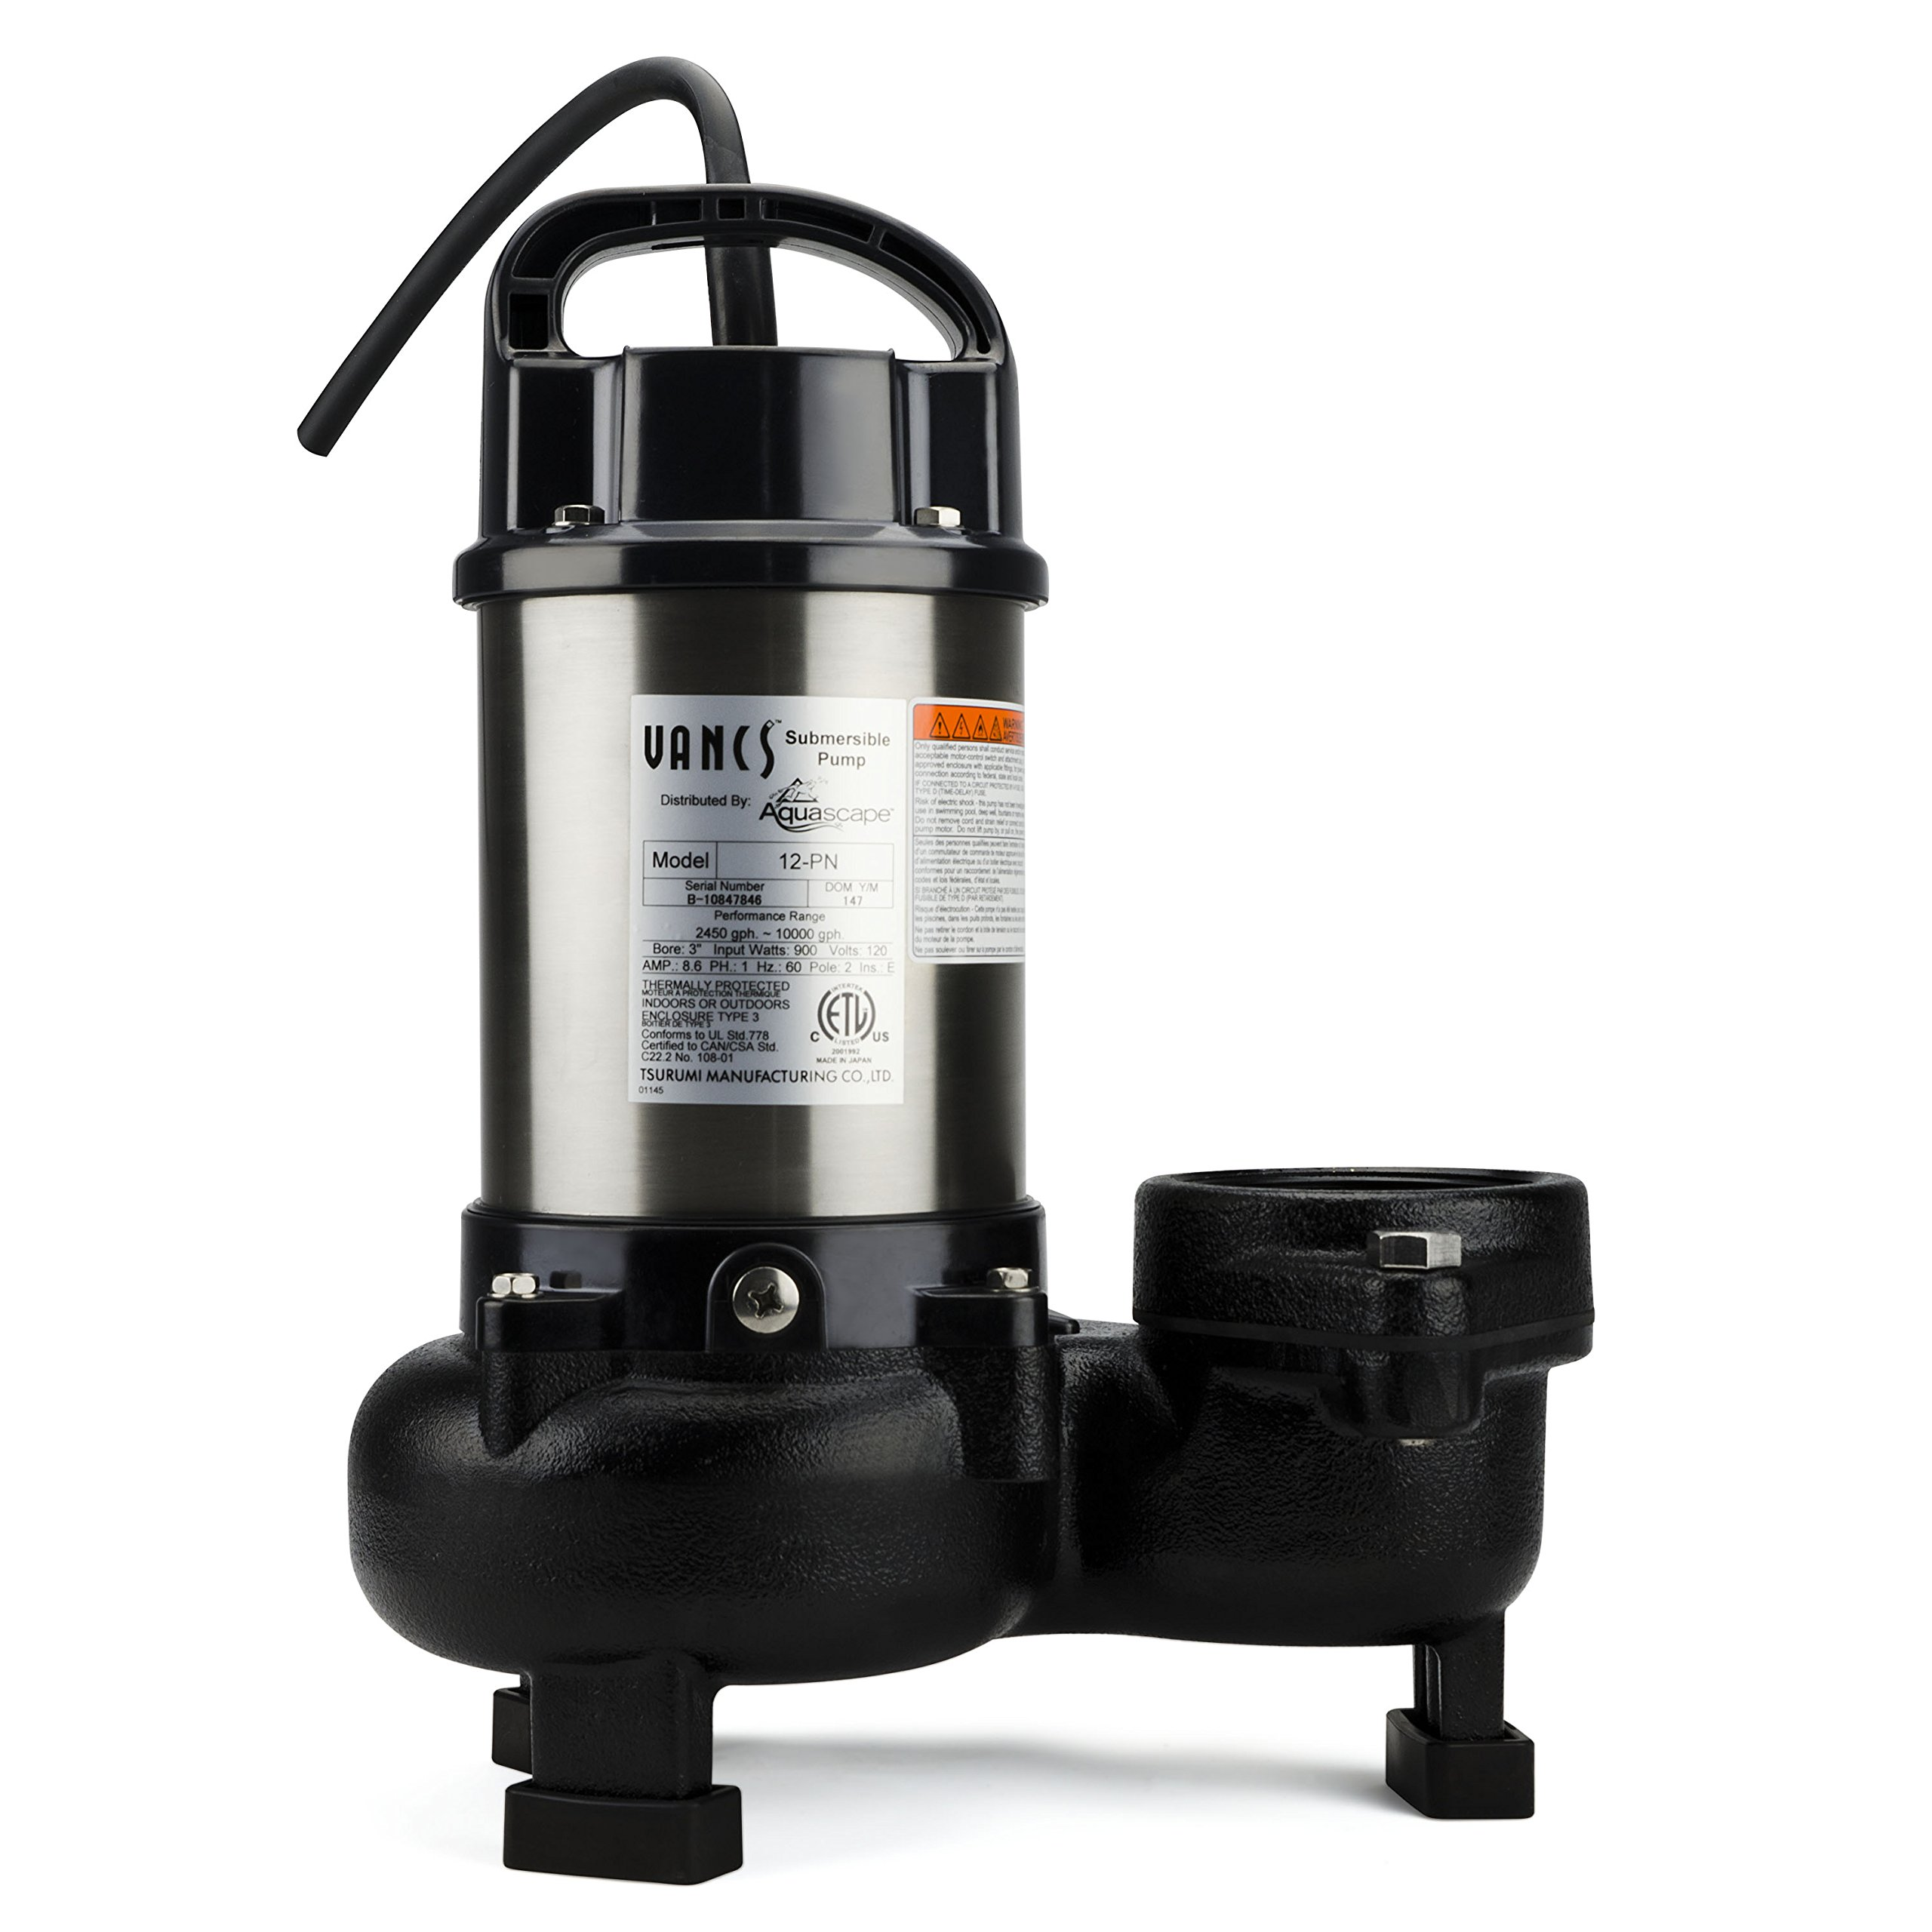 Aquascape 30391 tsurumi 12pn submersible pump for ponds for Submersible pond pump and filter